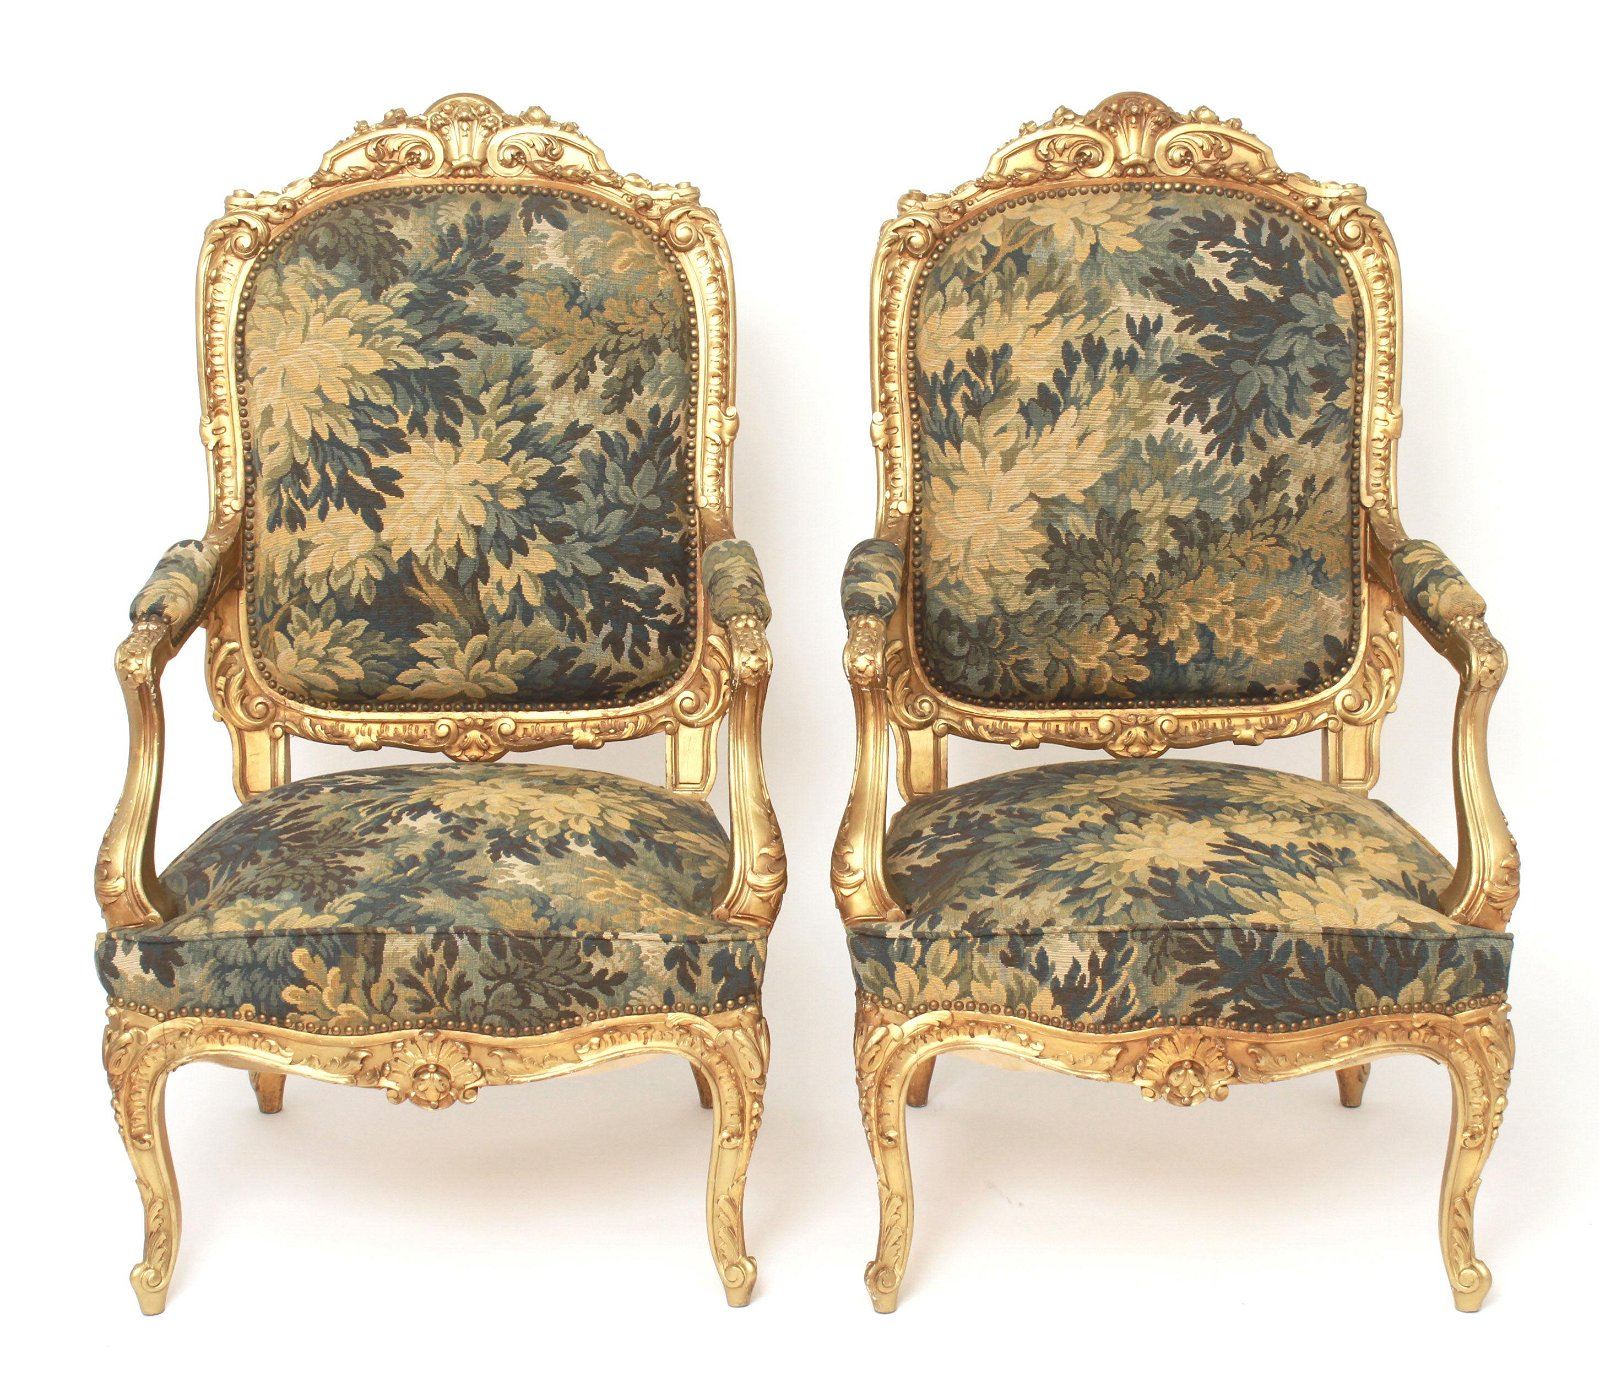 French Louis XV Style Giltwood Tapestry Chairs, 2